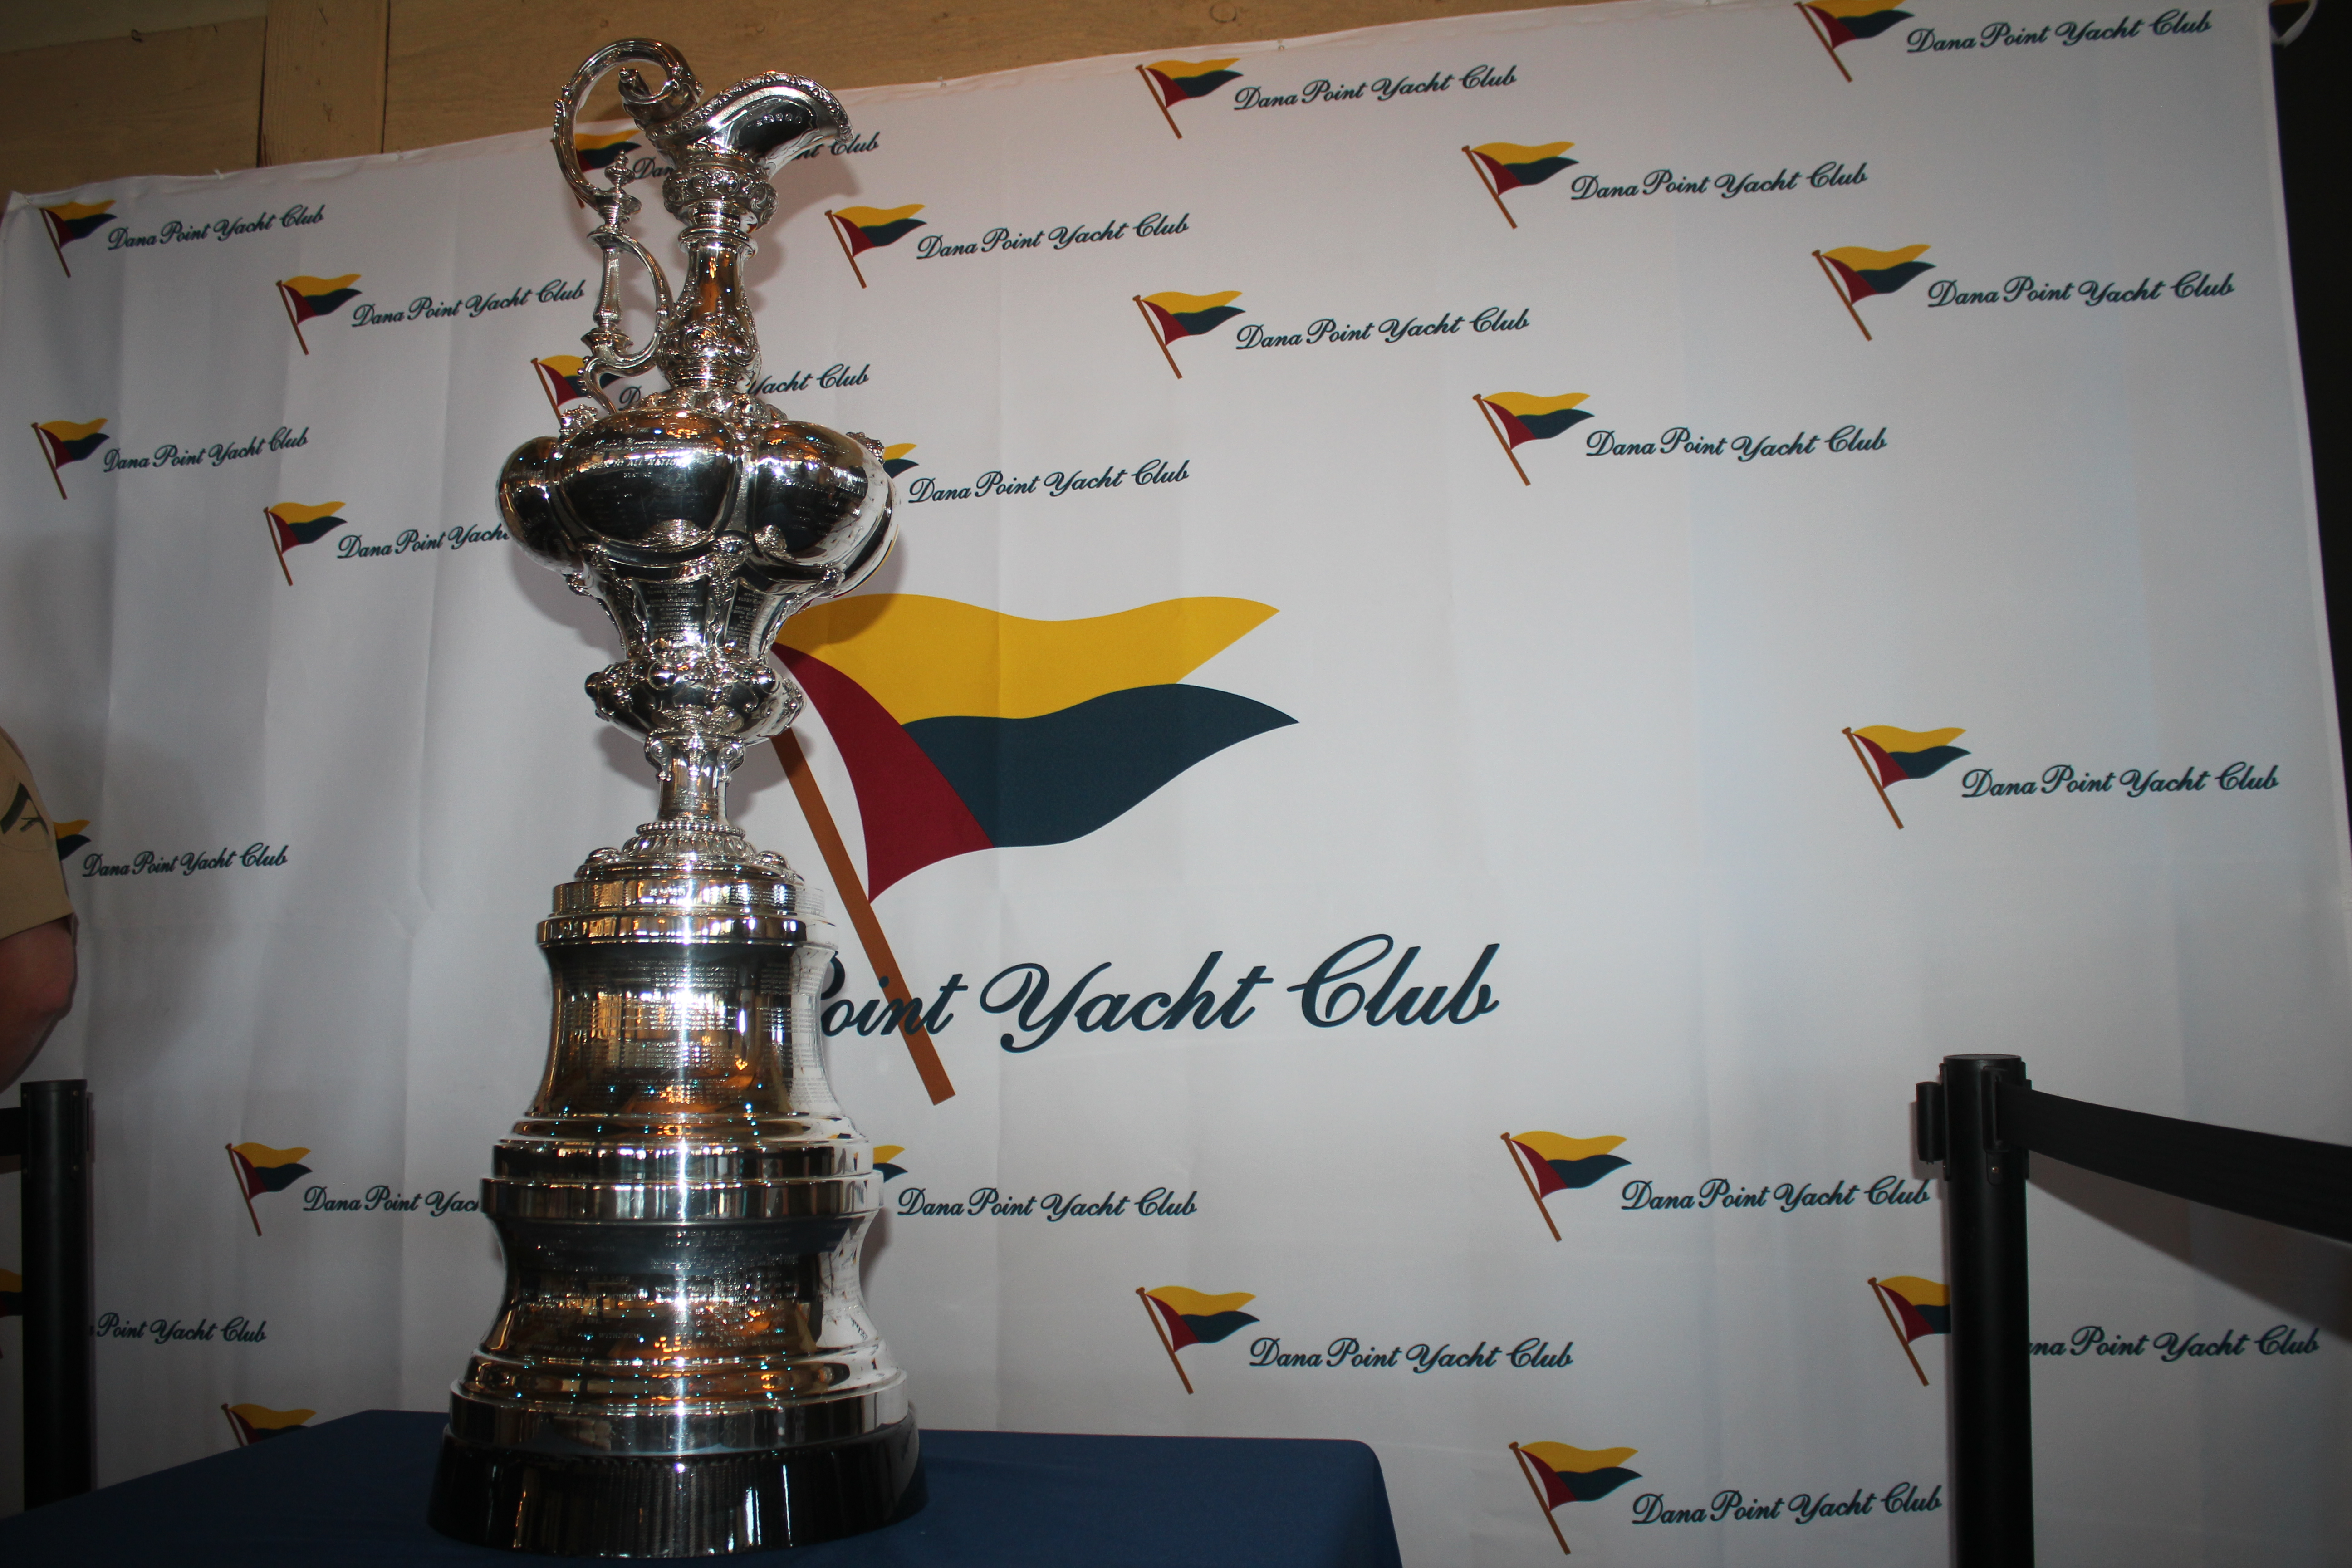 The 165-year-old America's Cup trophy is the oldest in international sport. Photo: Steve Breazeale